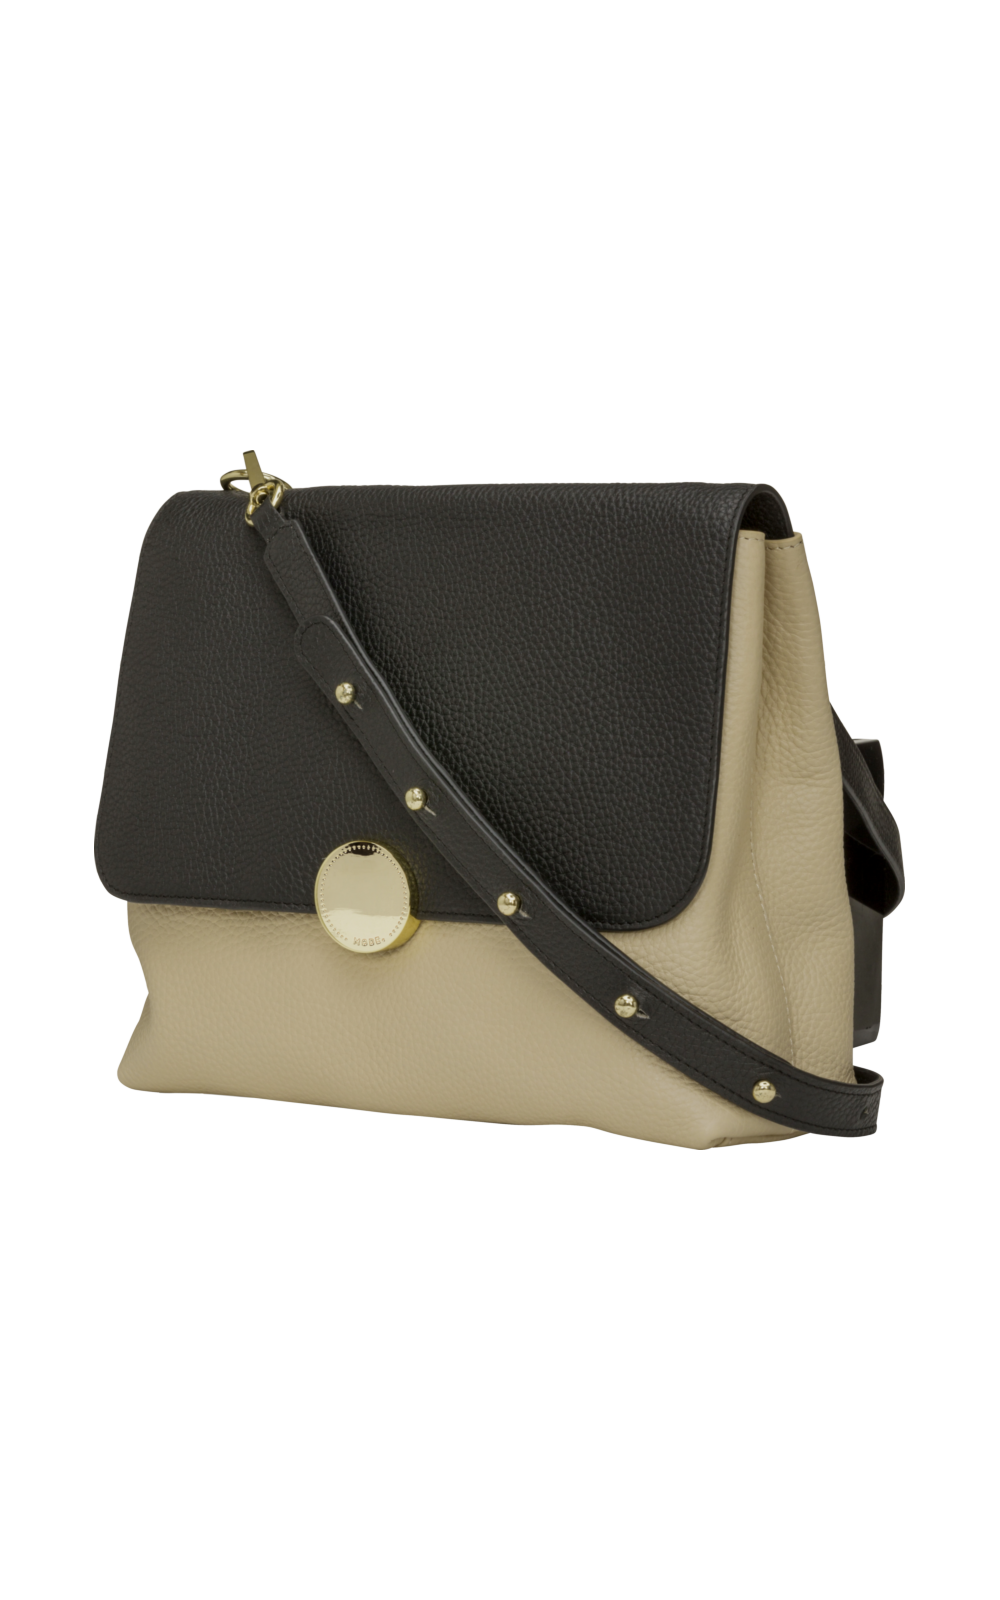 dbramante1928 Florence - Cross Body Bag - M - Night Black & Sahara Sand